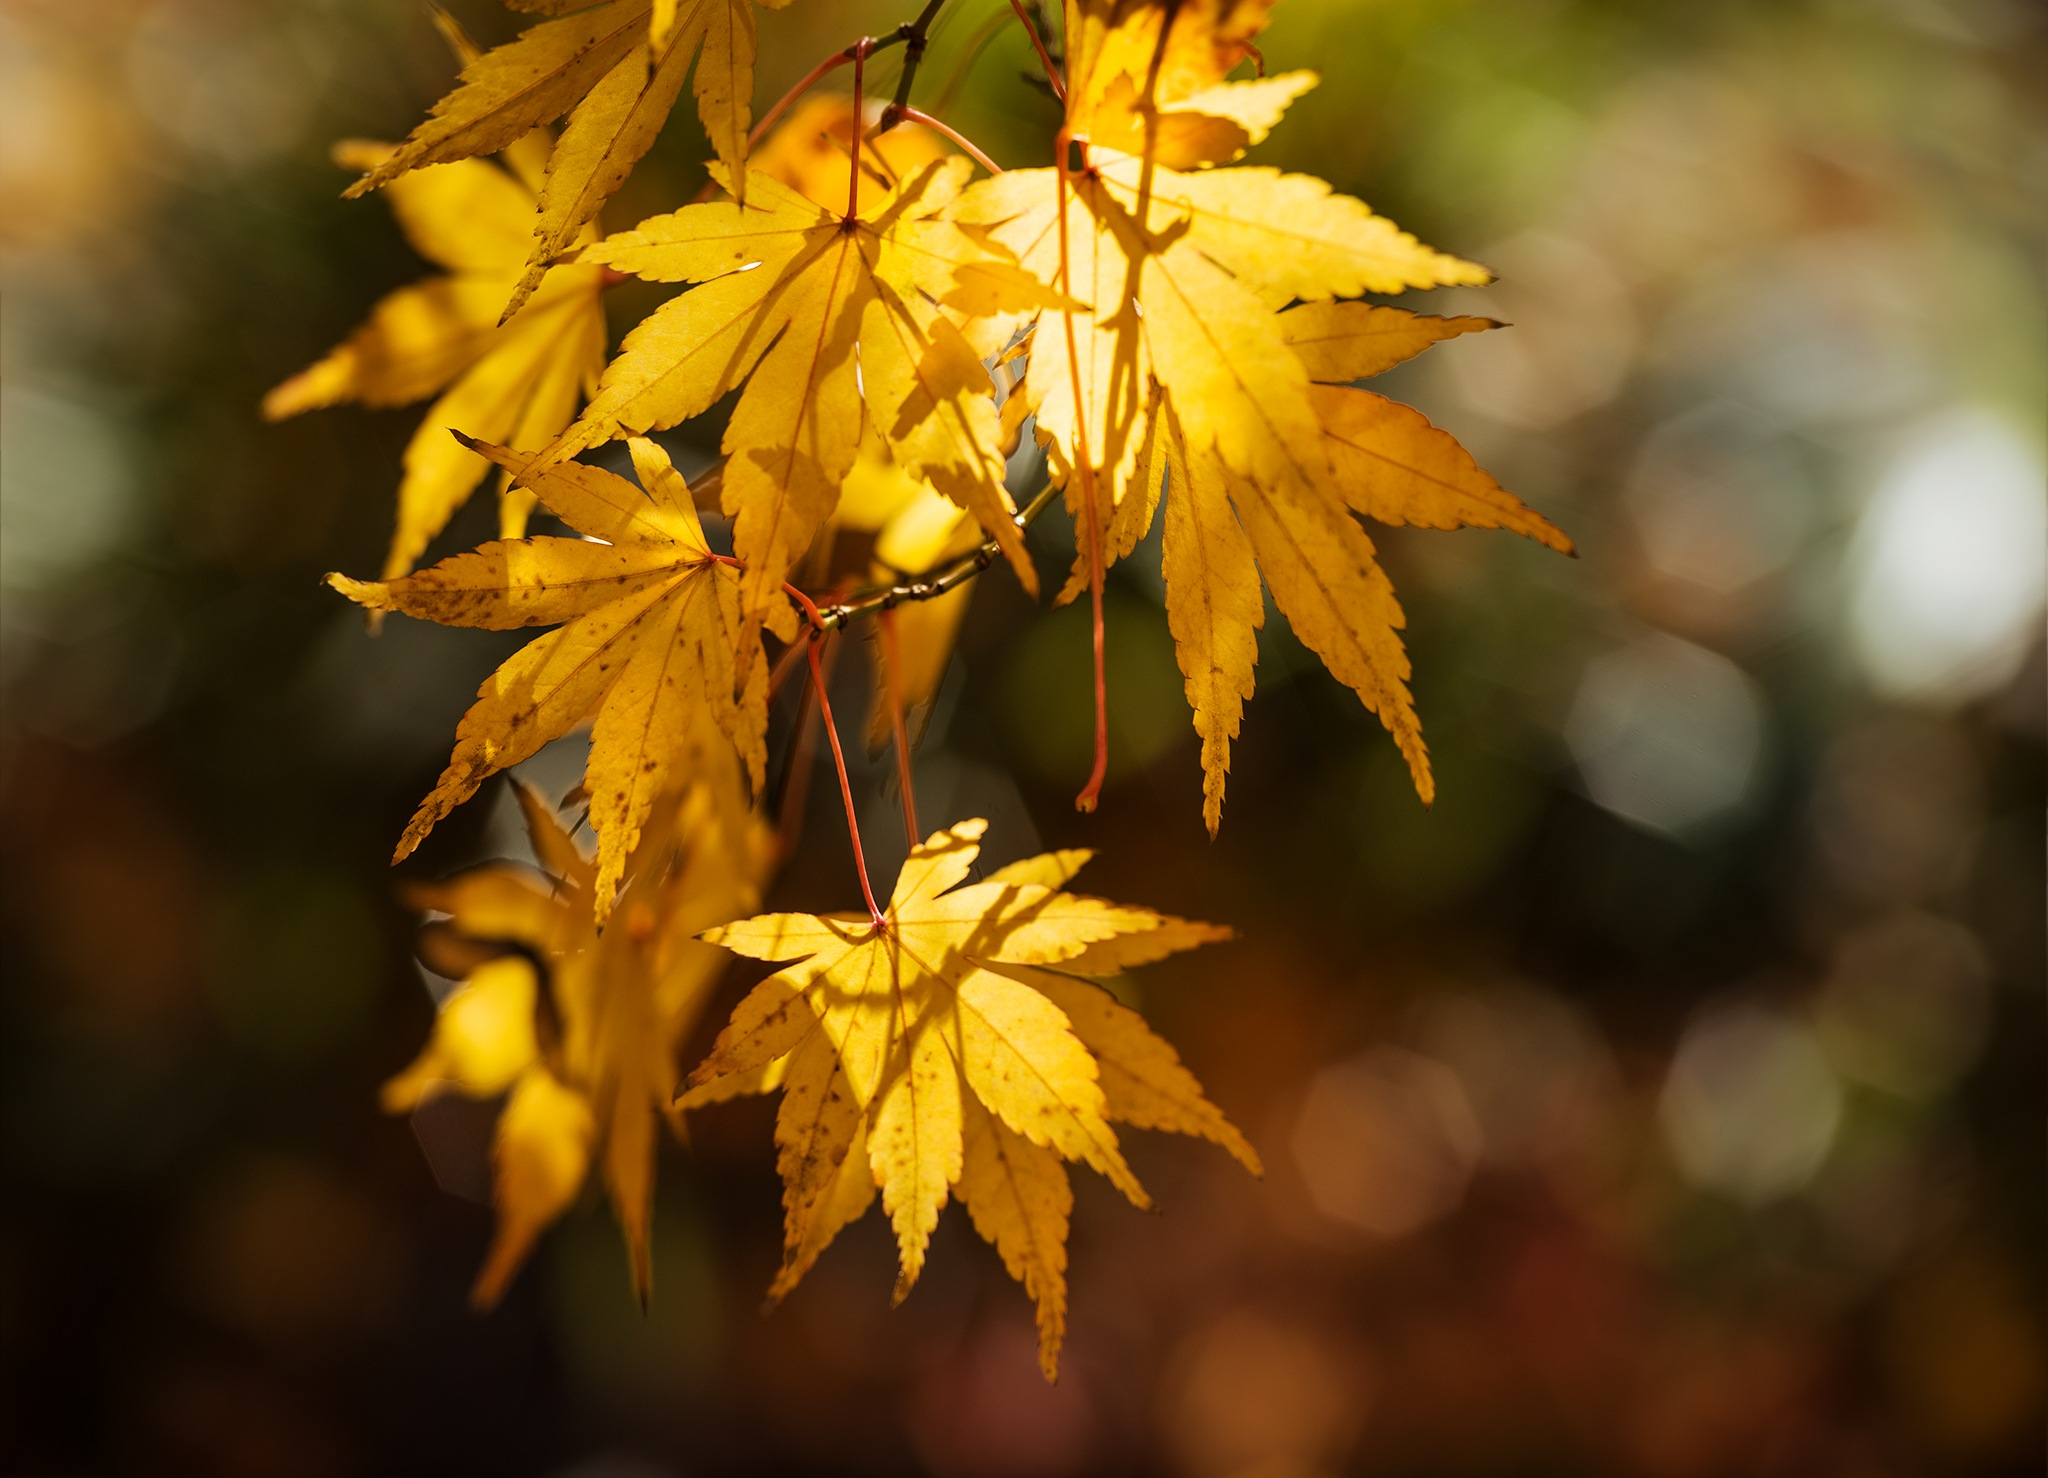 Acer gold by Ganesh Neumair